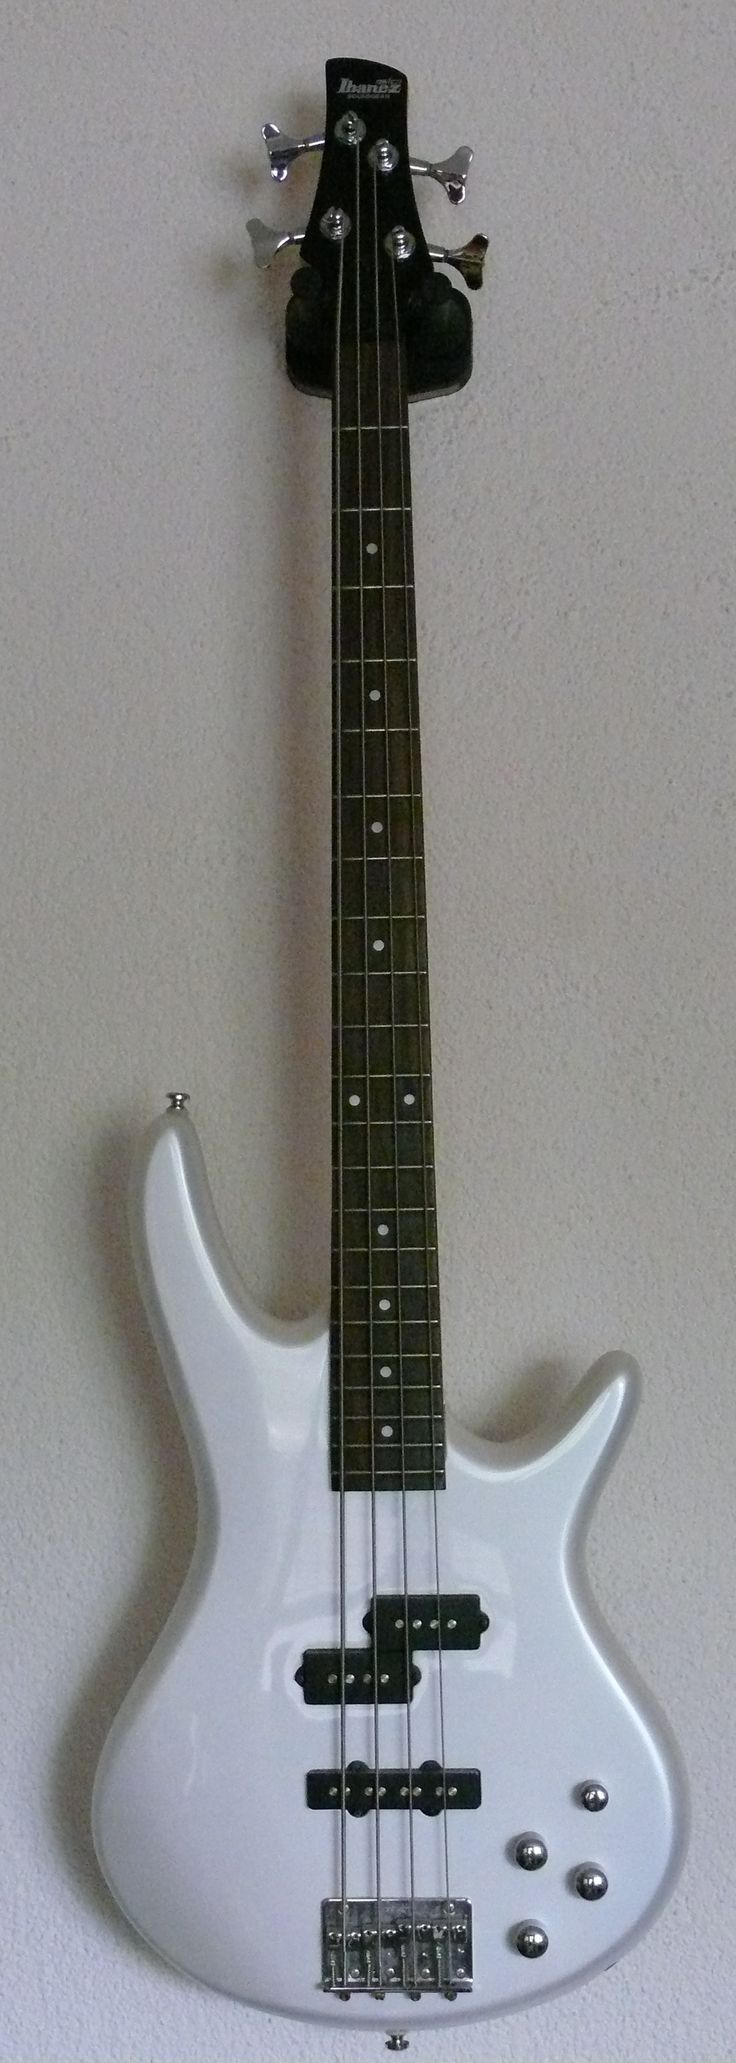 25+ Best Ideas about Basse Ibanez on Pinterest | Guitare ...